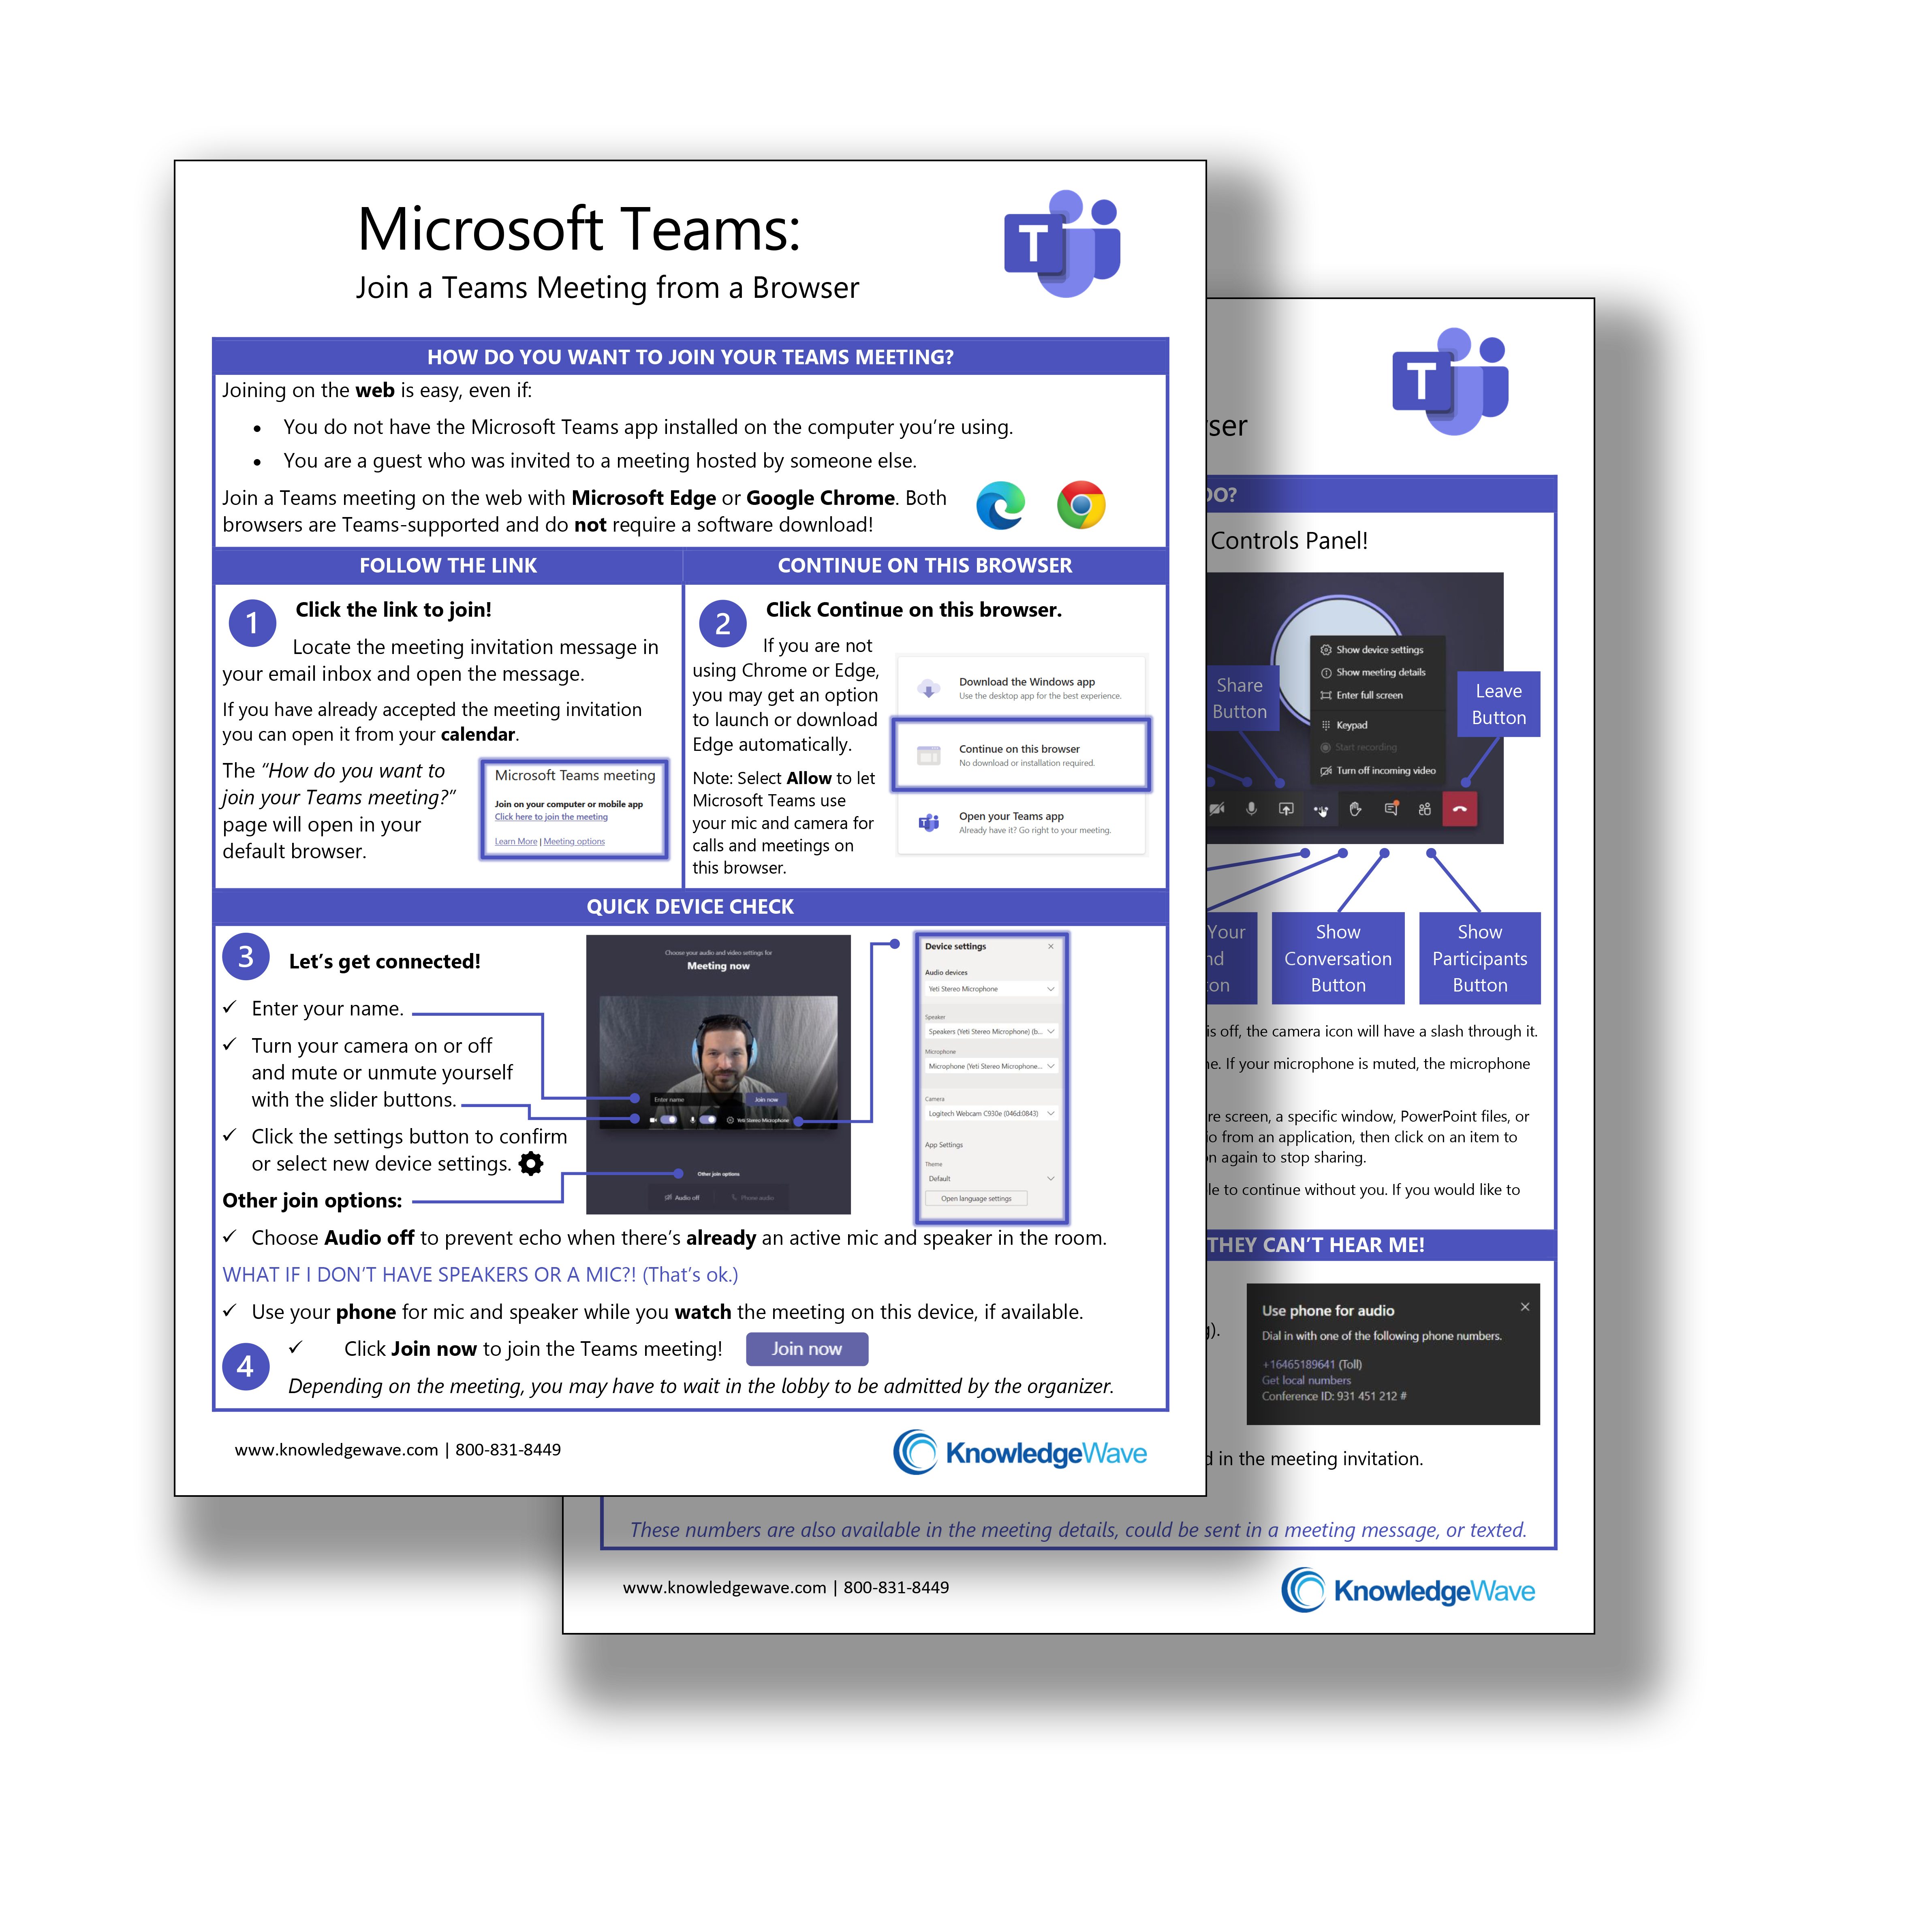 Teams from a Browser Guide image